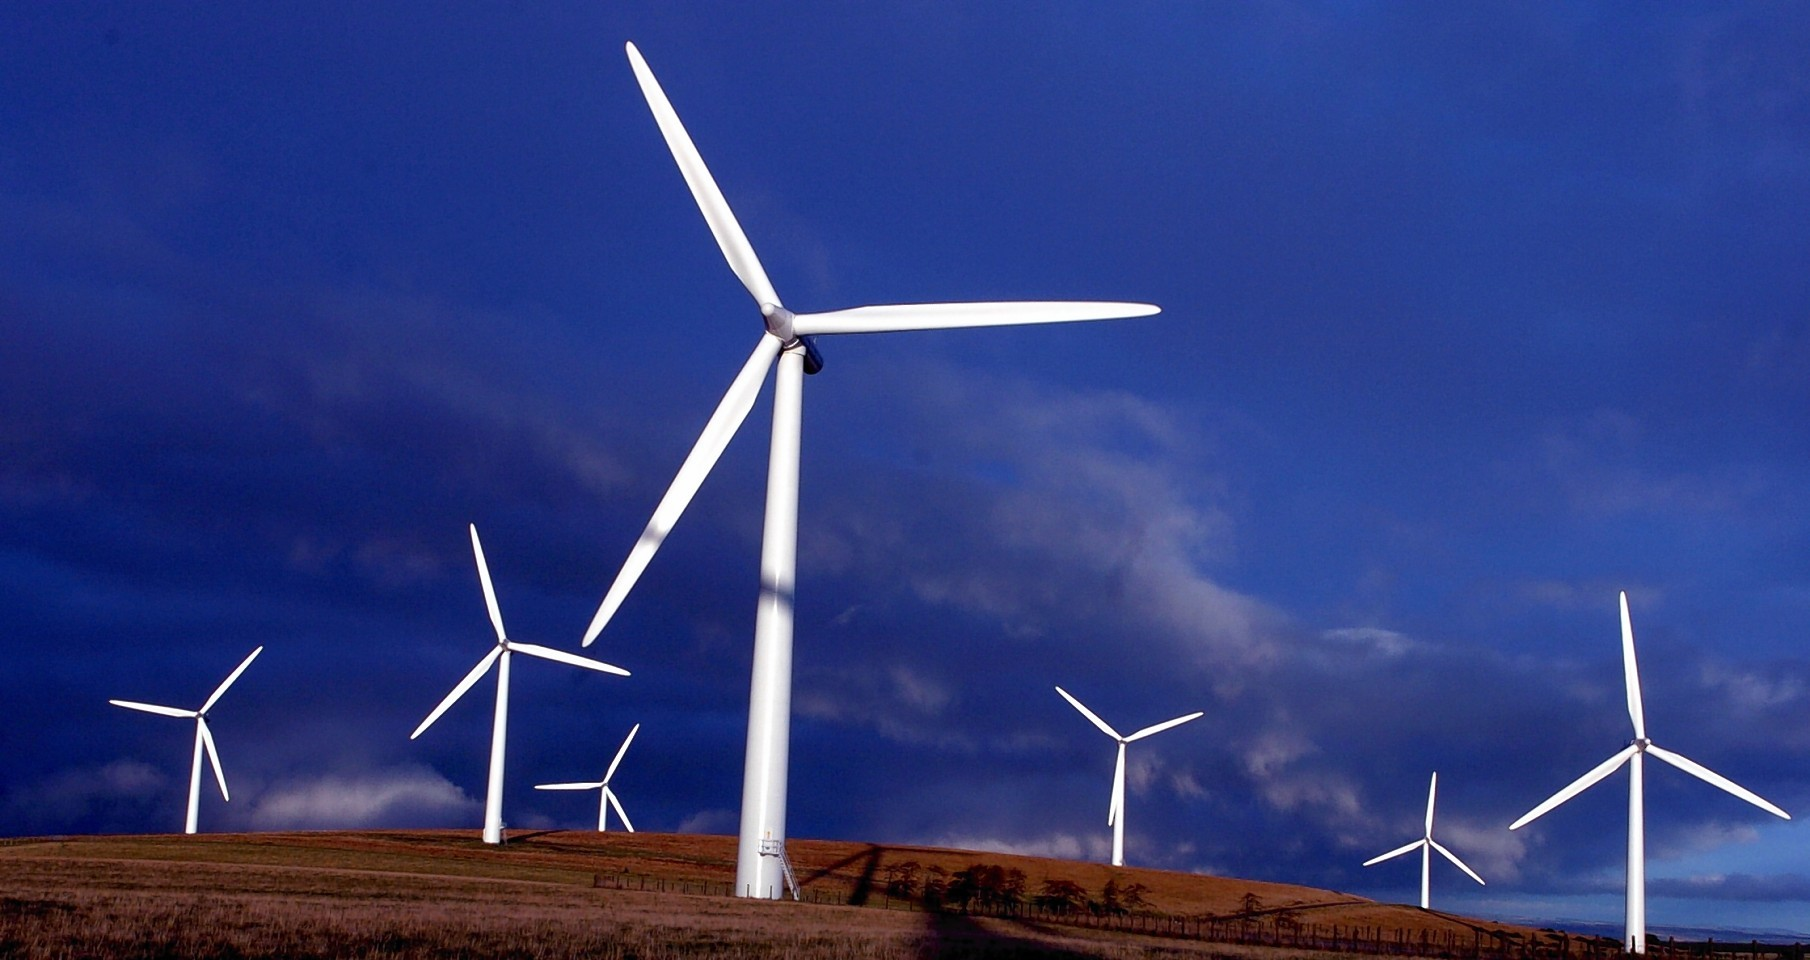 North-east windfarms get £1m in 'constraint payments'